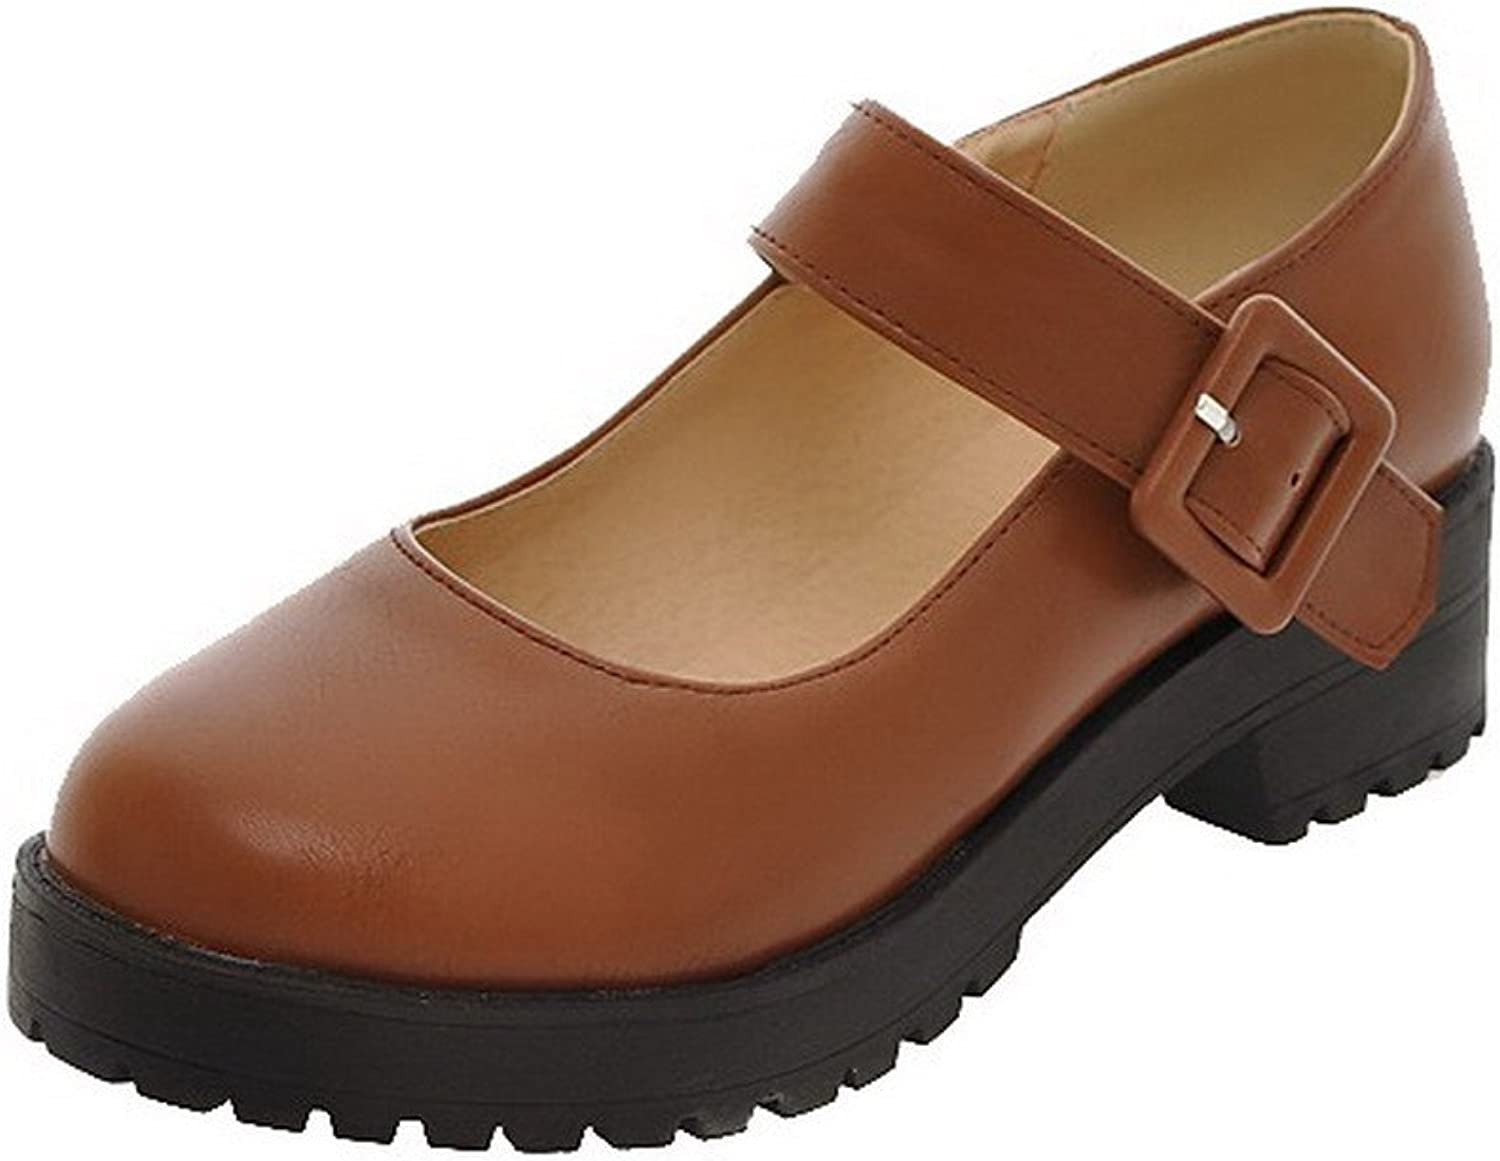 AmoonyFashion Women's Soft Material Round Closed Toe Buckle Solid Court shoes